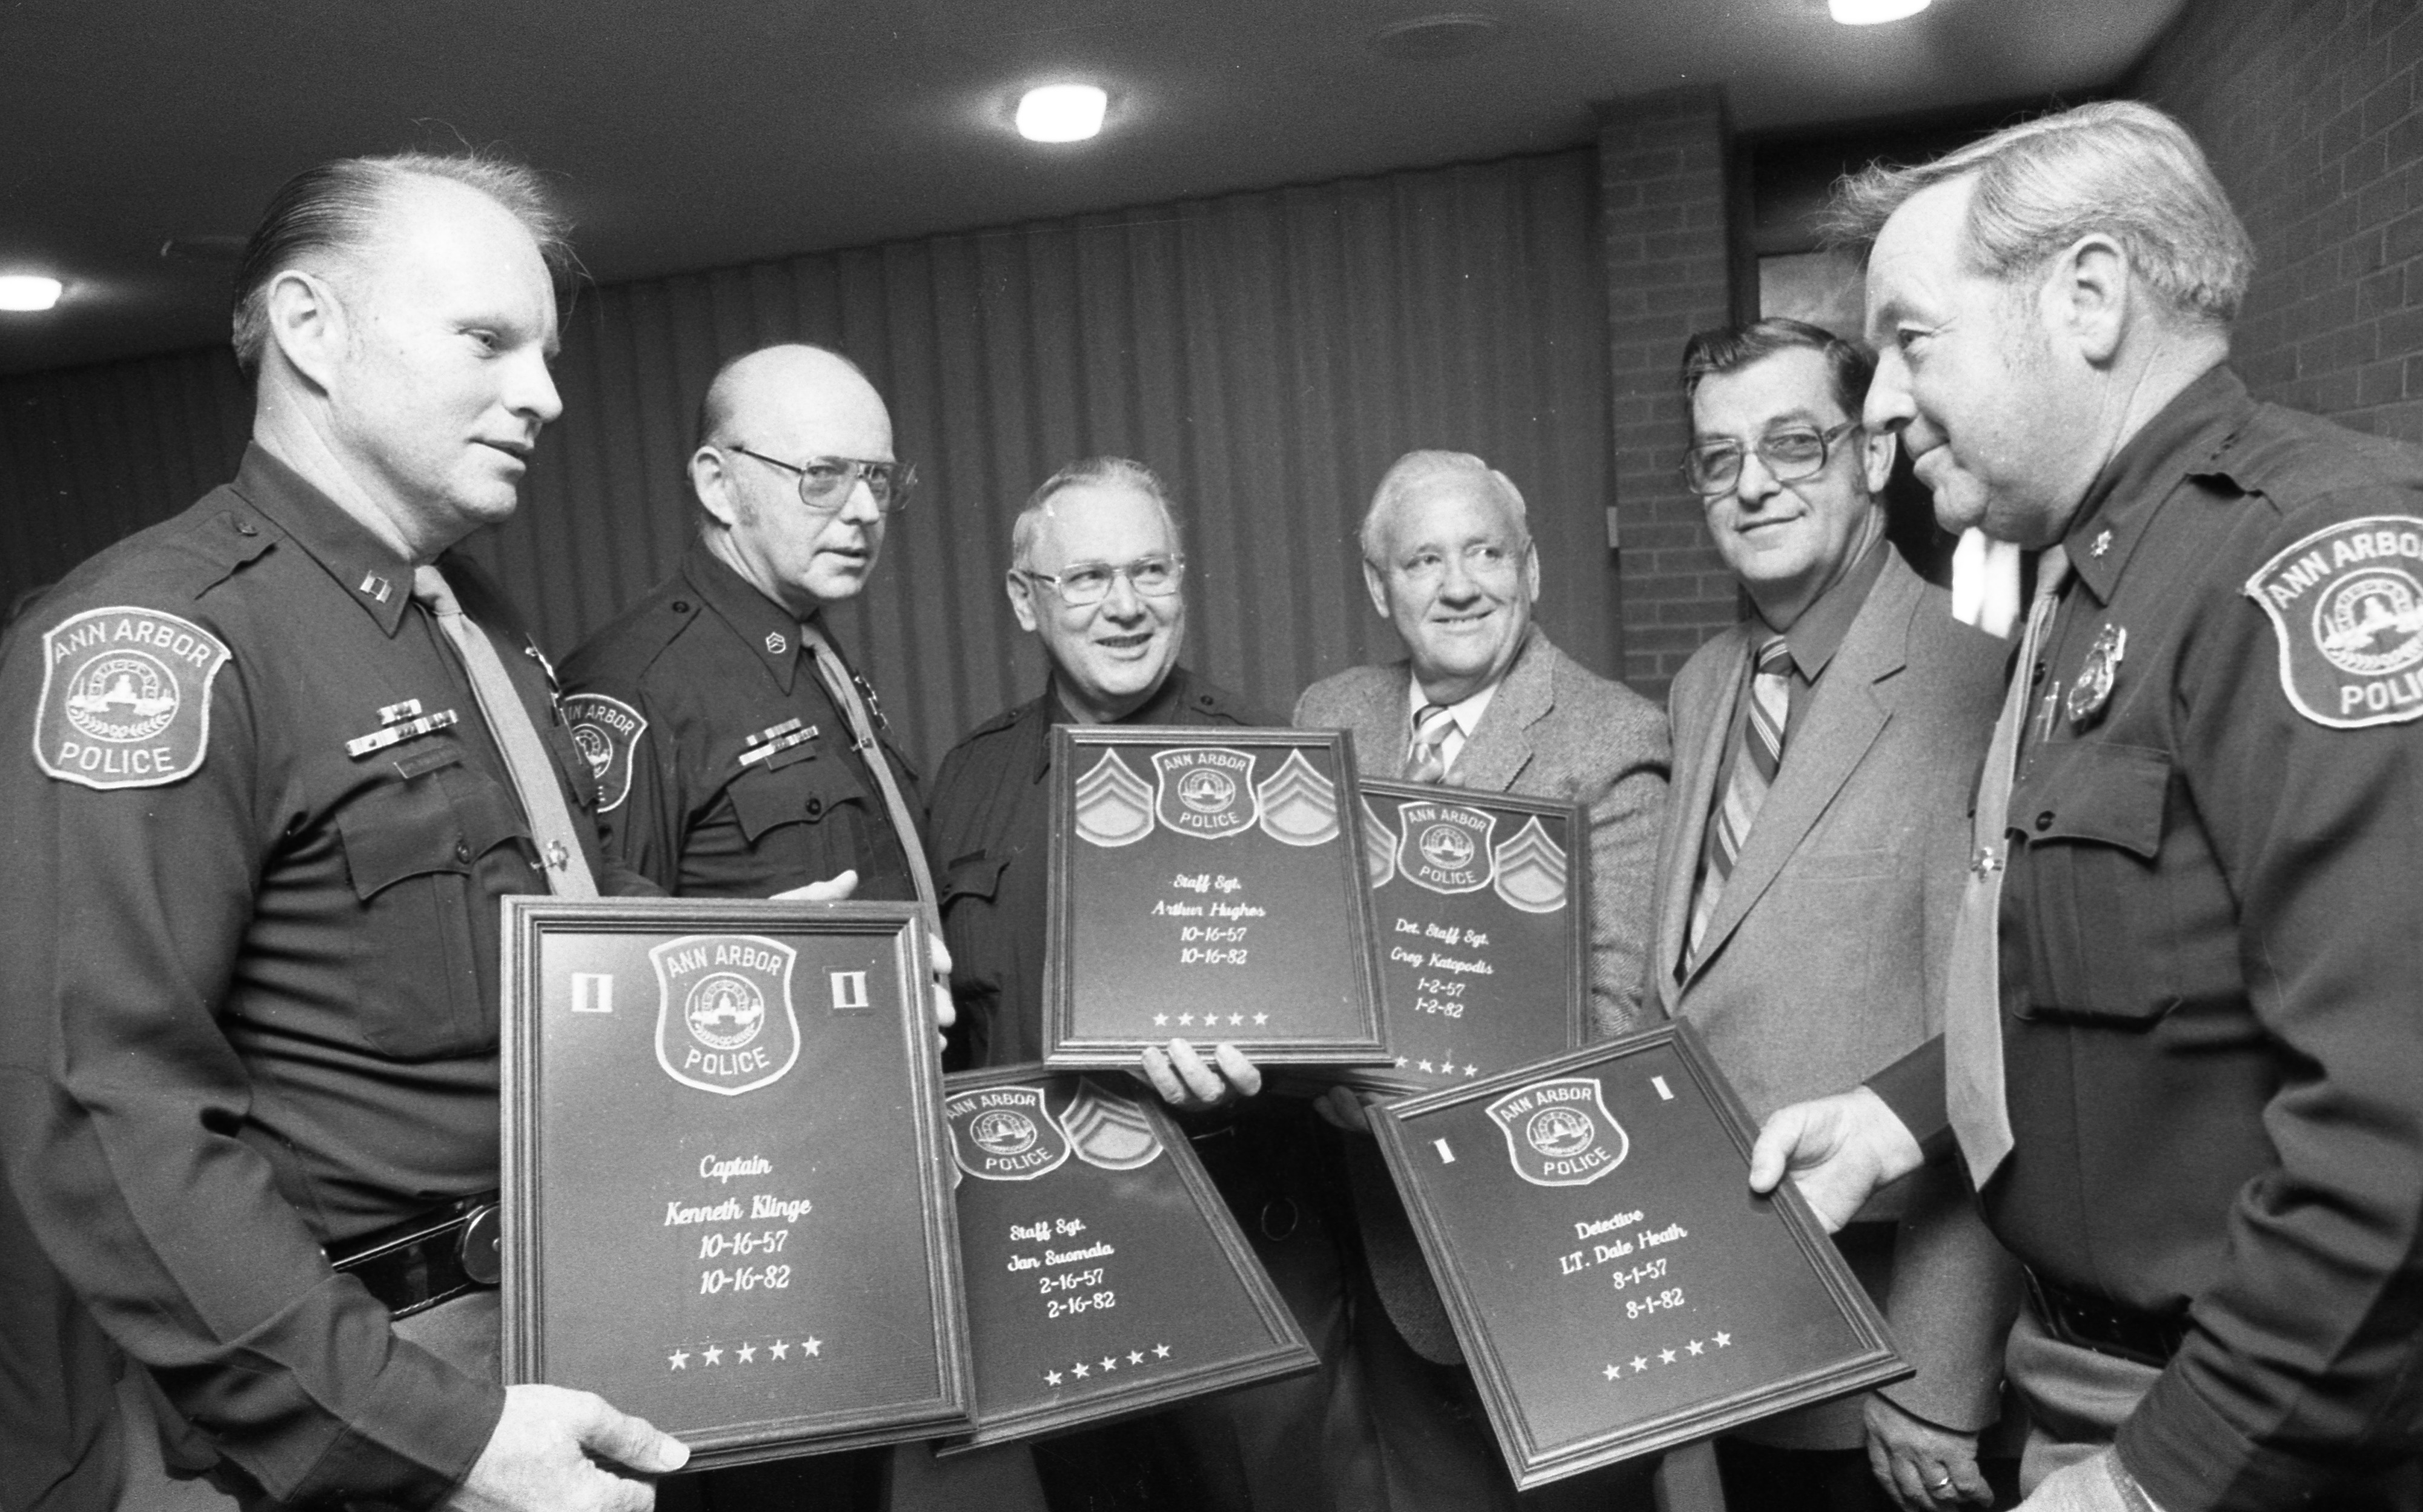 Ann Arbor Police Veterans Honored For 25 Years Of Service, November 1982 image